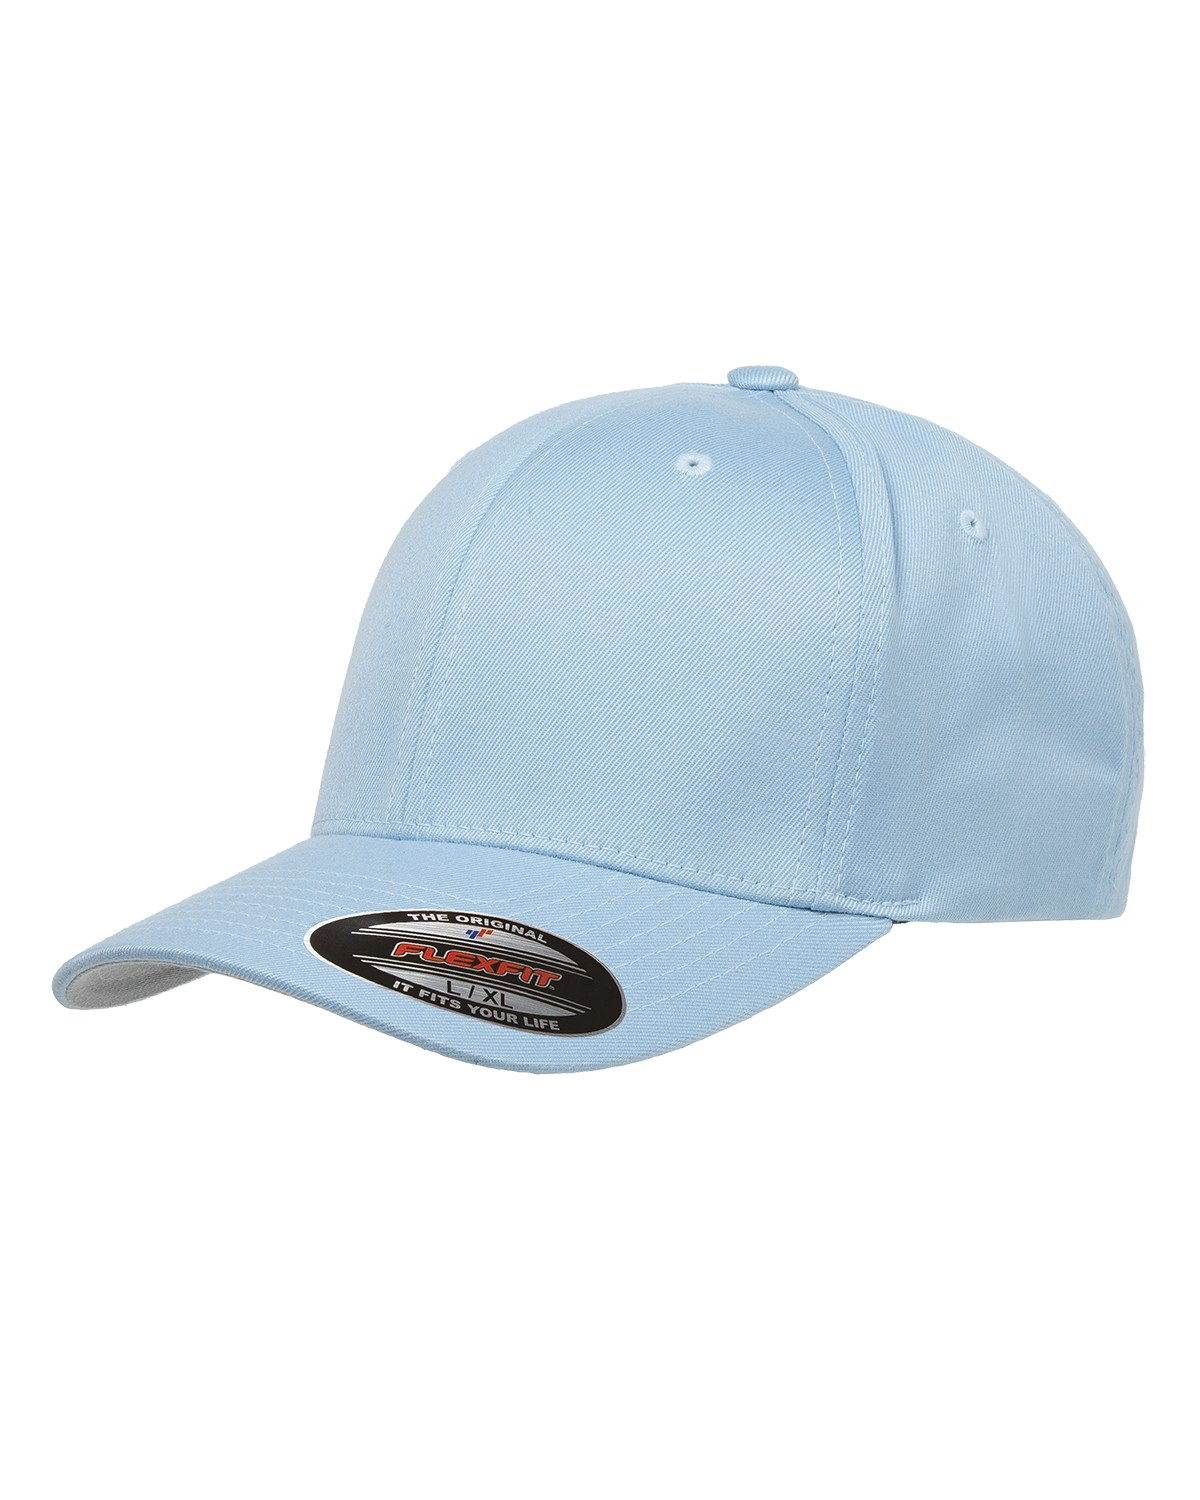 6277 Flexfit CAROLINA BLUE